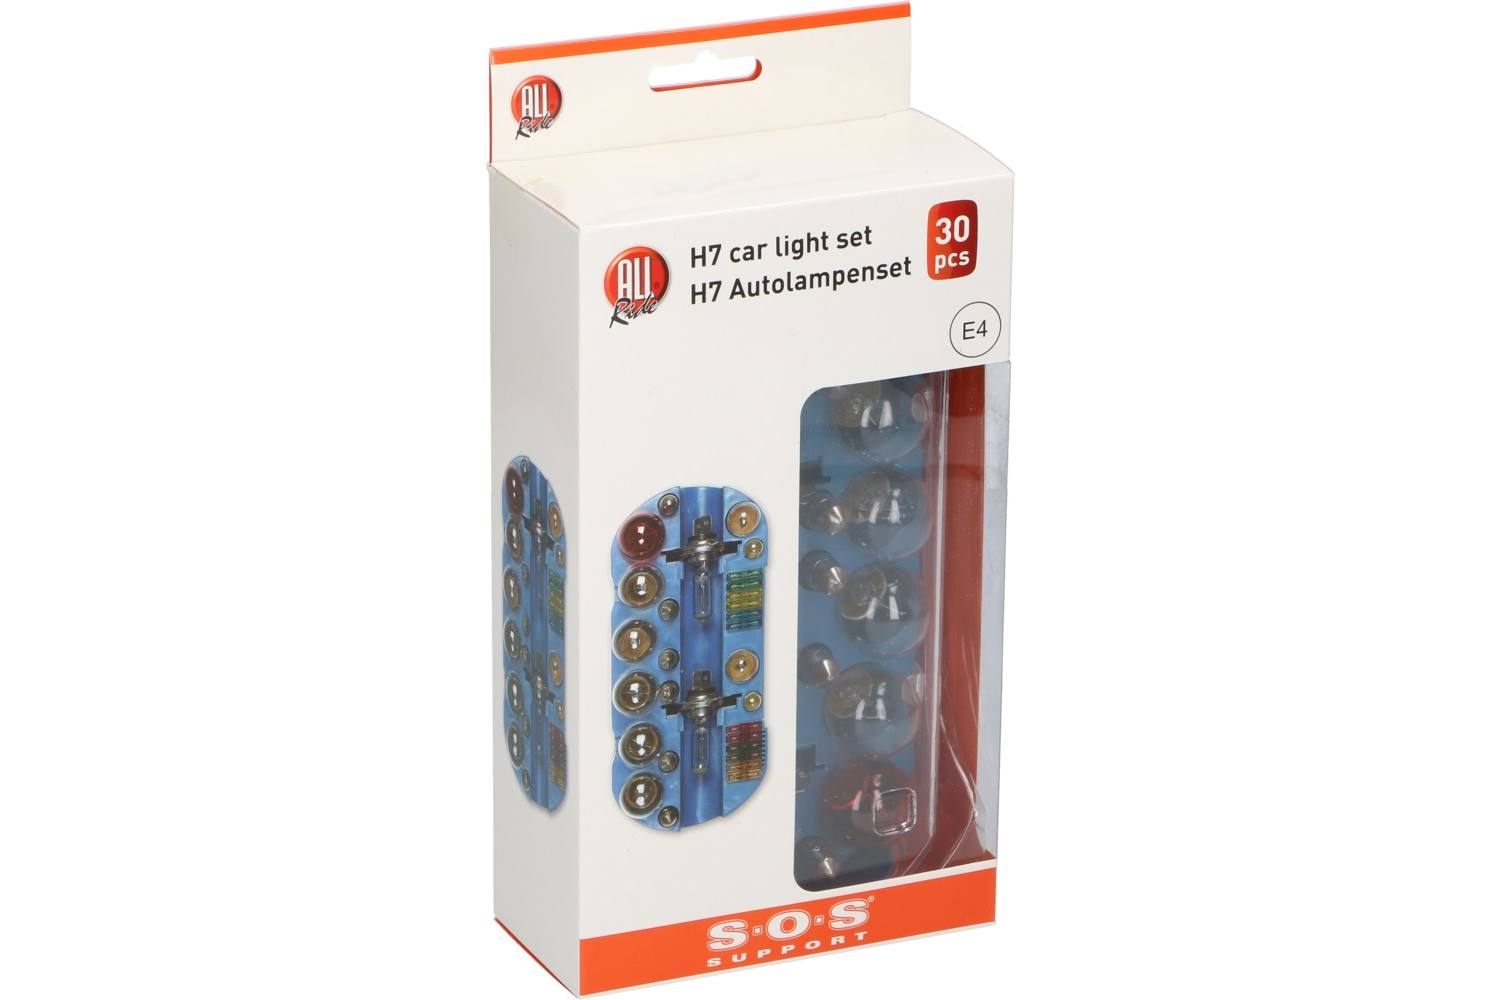 Car bulb set, AllRide SOS support, H7, 30 pieces 1